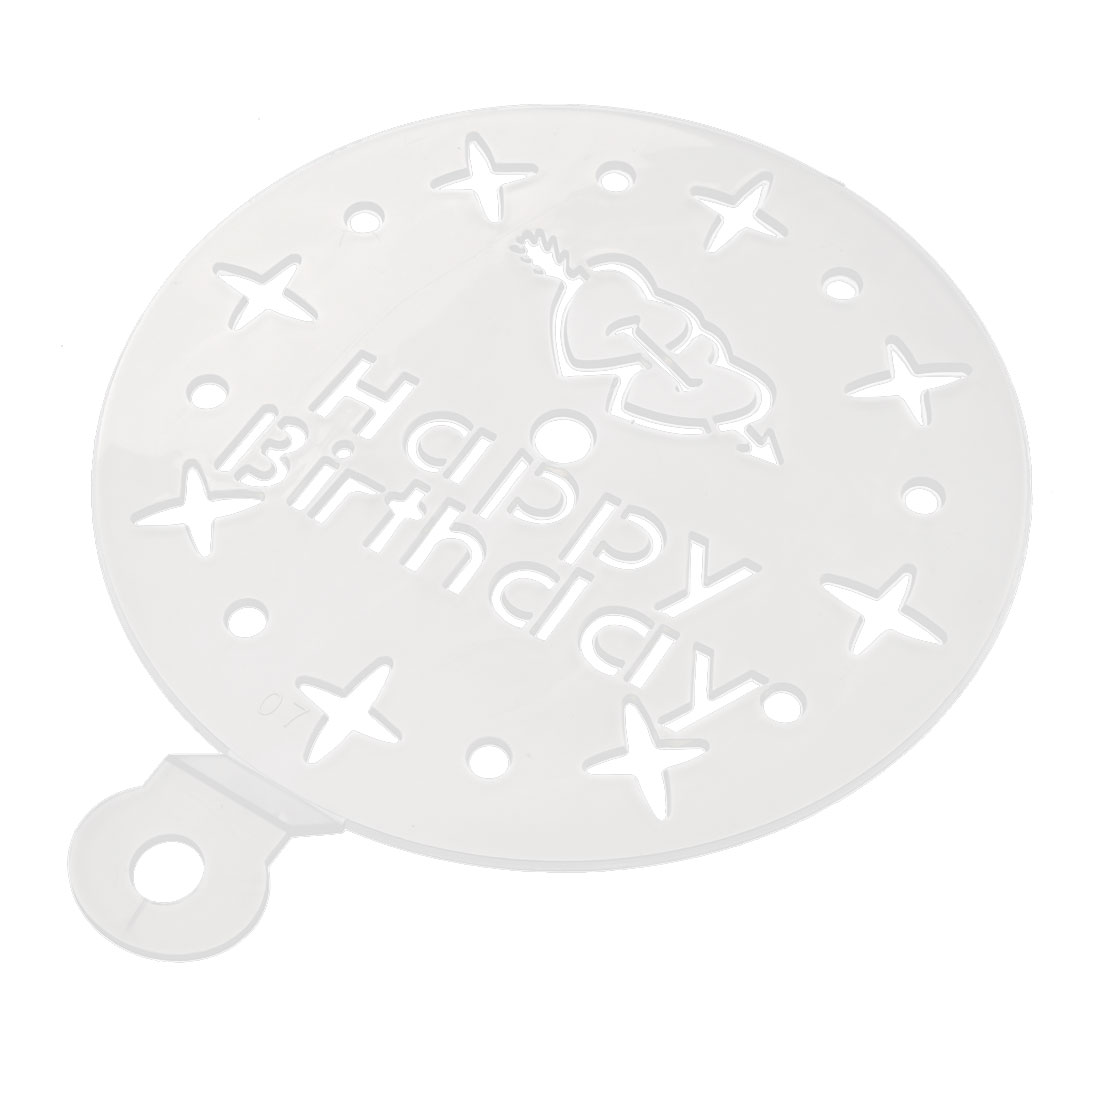 Happy Birthday Heart Star Hollow Out Cake Sugar Fondant Cutter Decorating Mold Mould 15cm